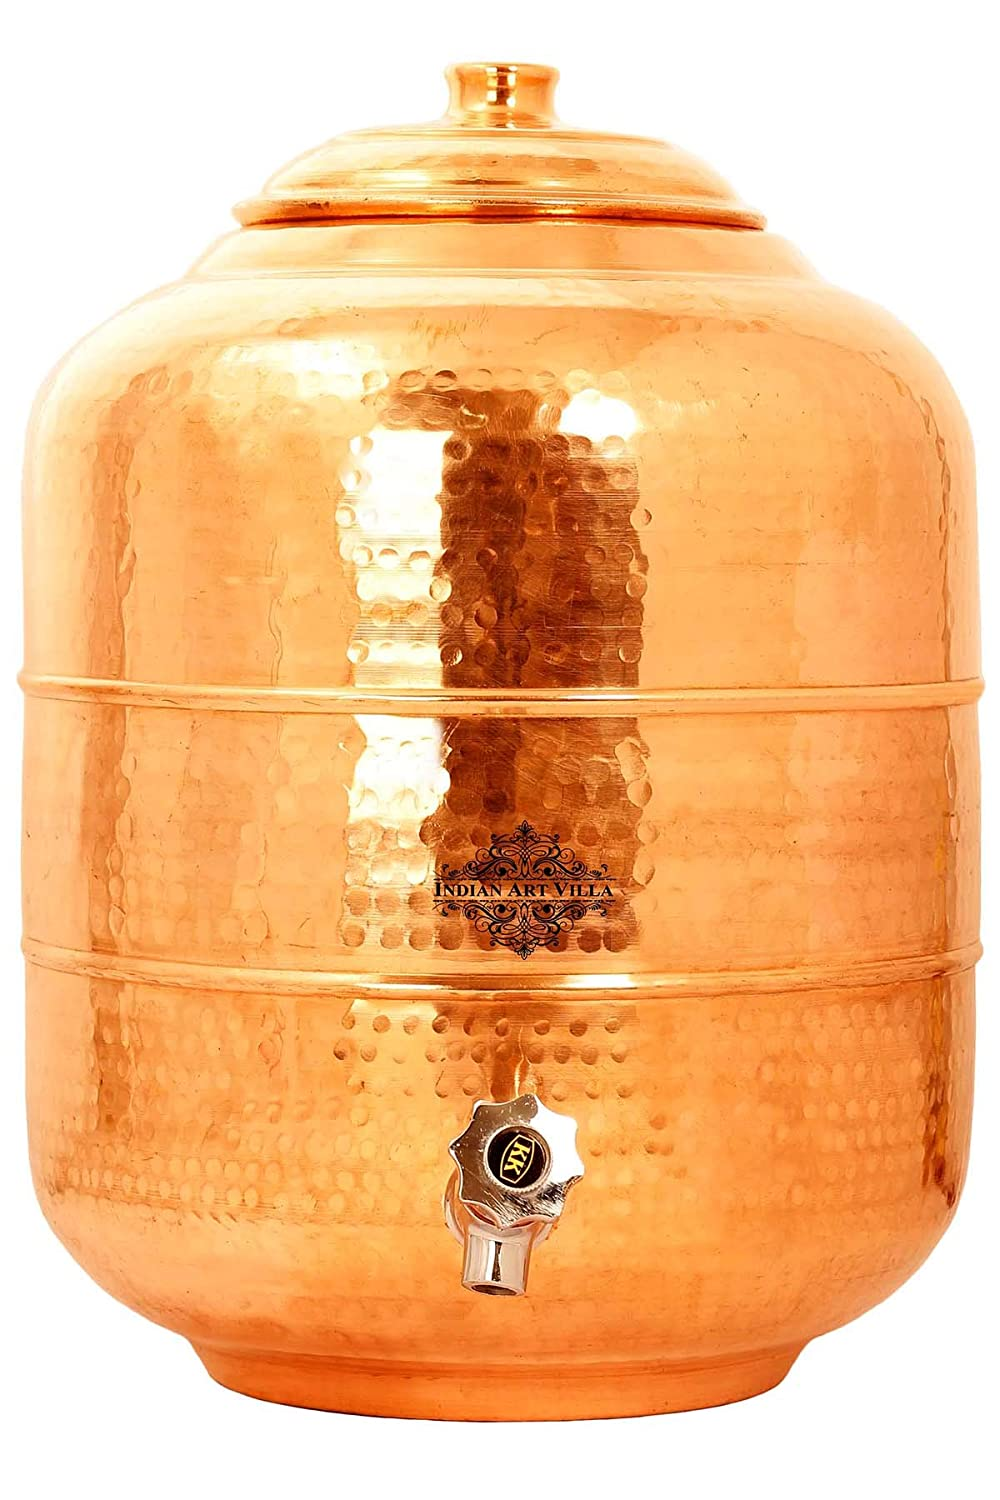 Indian Art Villa Copper Water Pot Tank Dispenser|Storage Water|Benefit Yoga Ayurveda| 236 OZ…